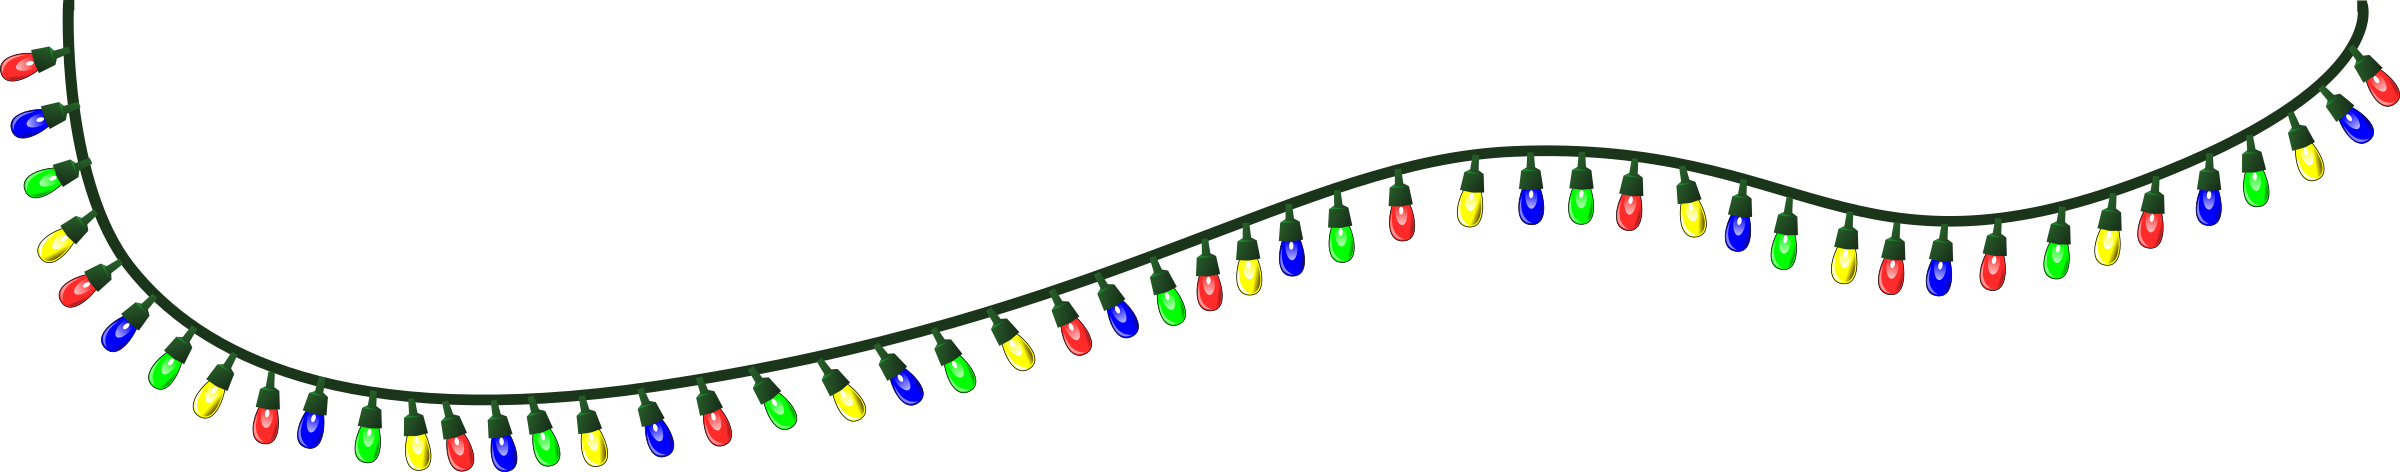 PNG File Name: Christmas Lights Transparent Background - Christmas Lights PNG